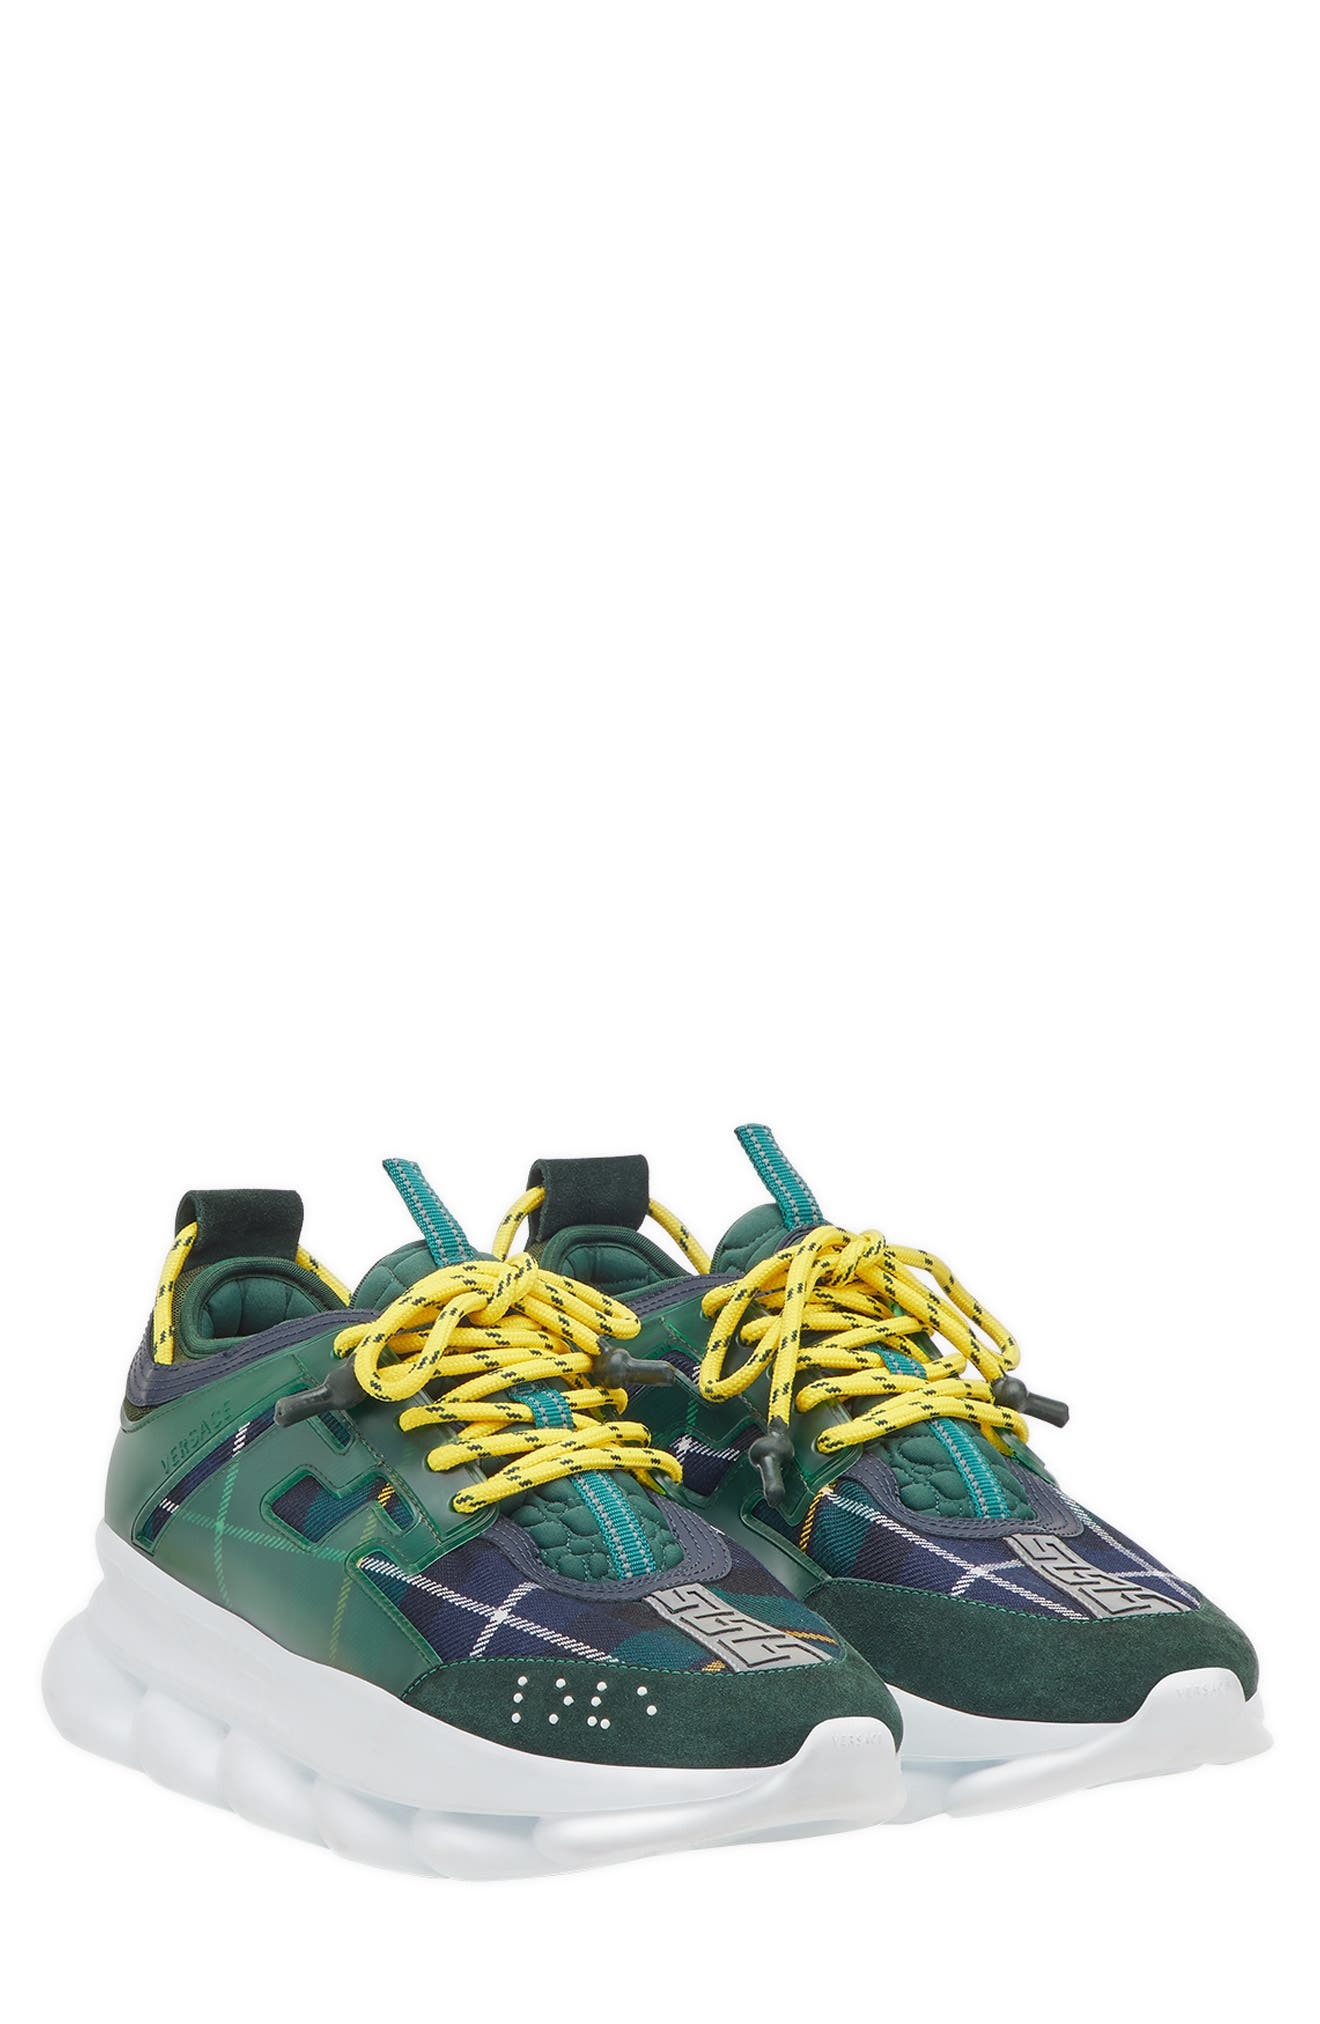 Chain Reaction Sneaker,                             Main thumbnail 1, color,                             VERDE/ GIALLO